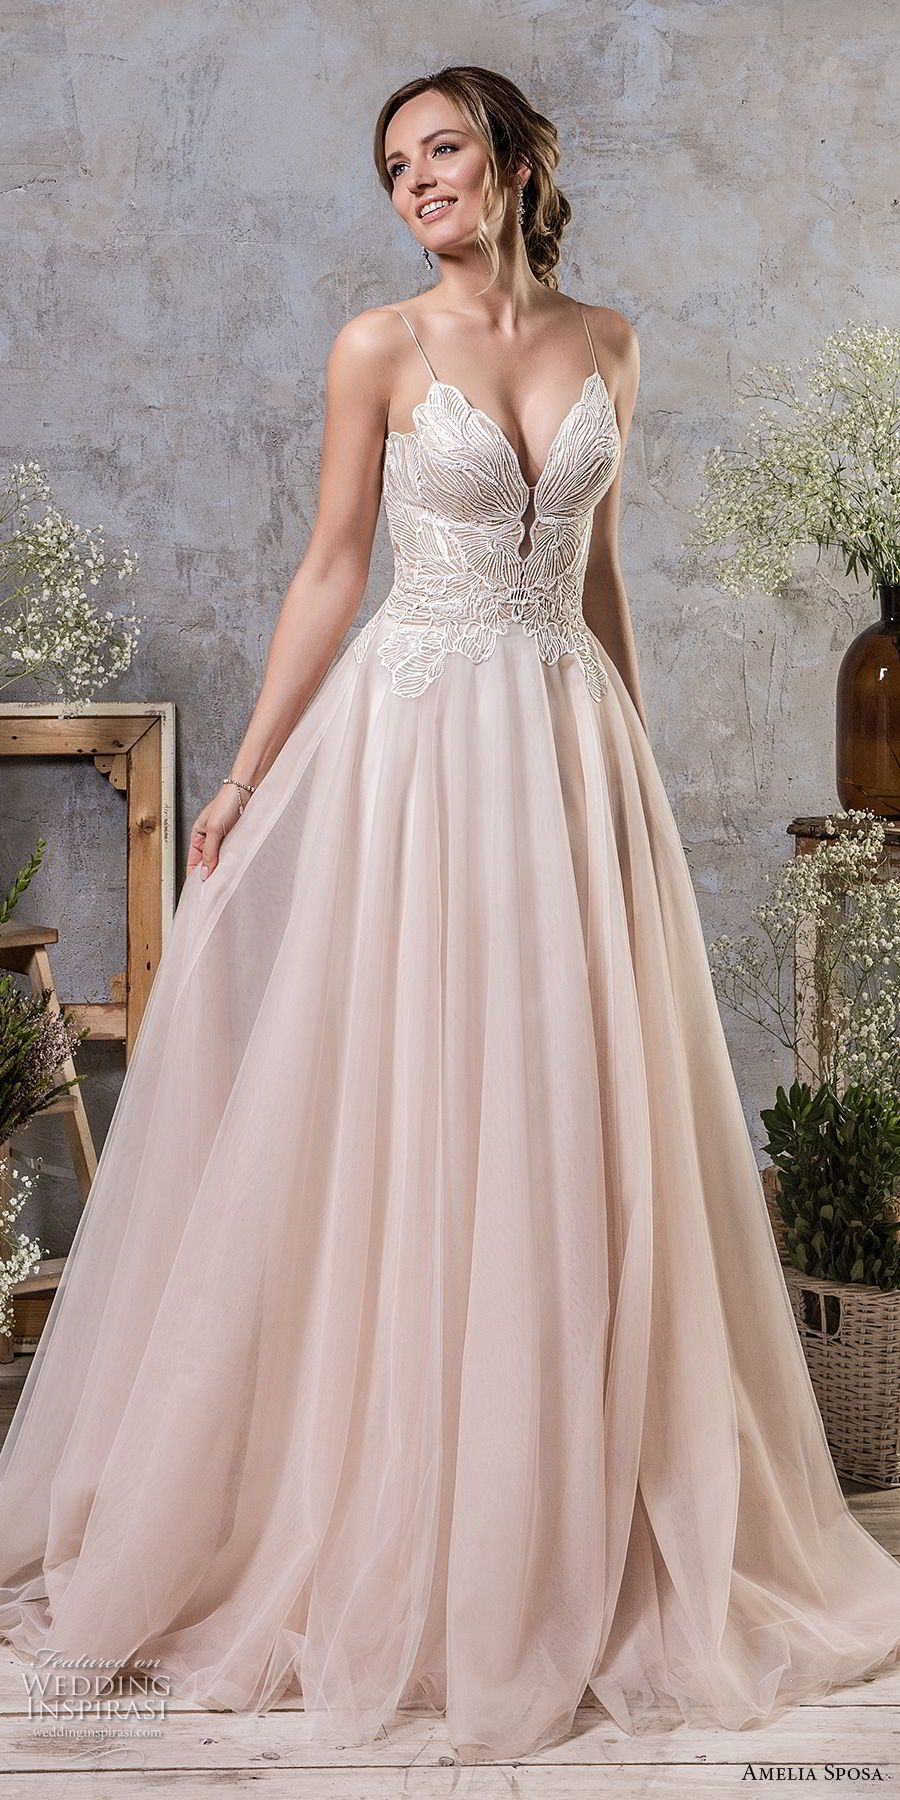 Amelia sposa fall wedding dresses amelia sposa chapel train